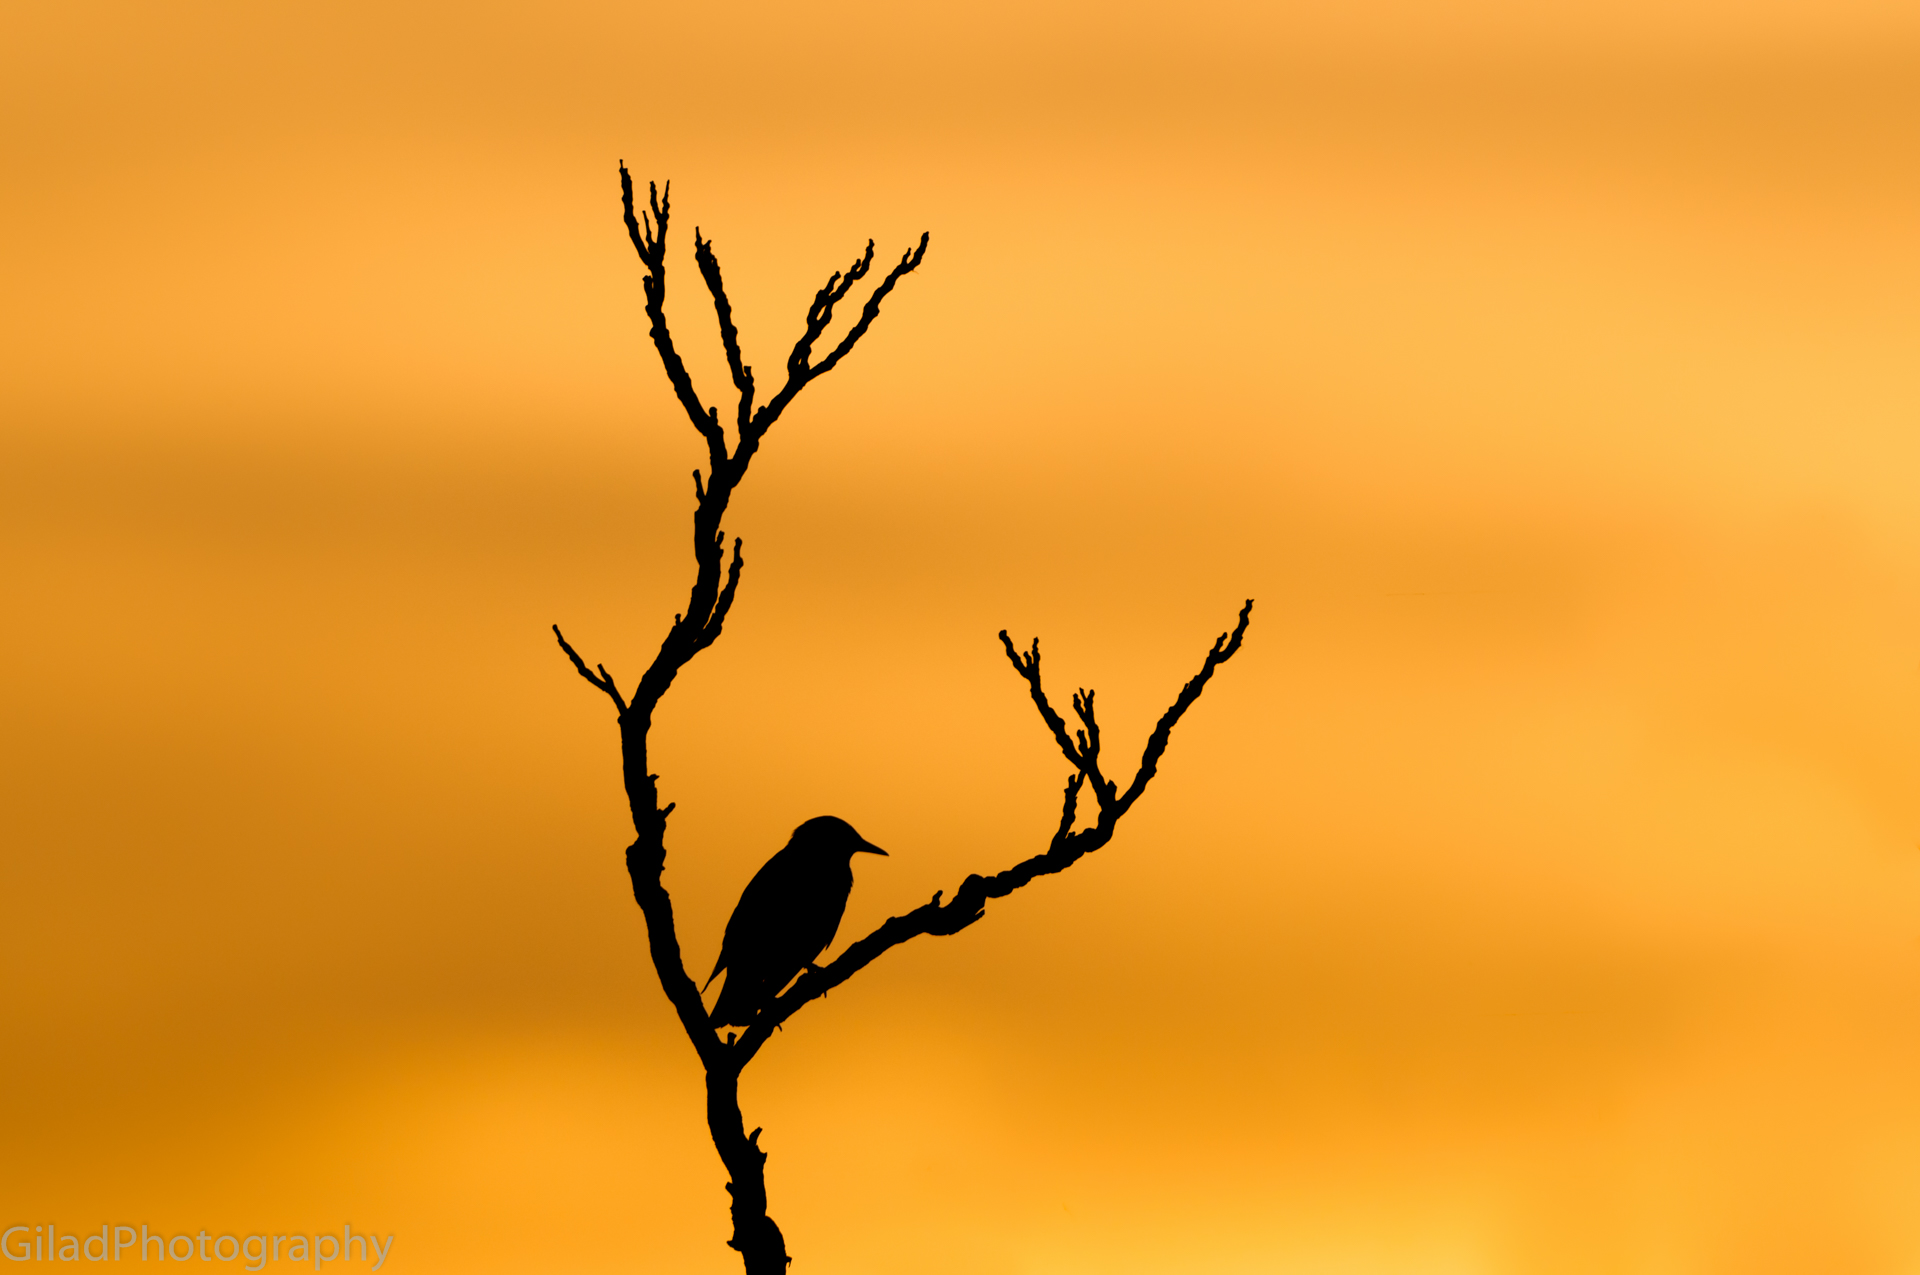 A silhouette of a bird outside my window in Ridgefield NJ